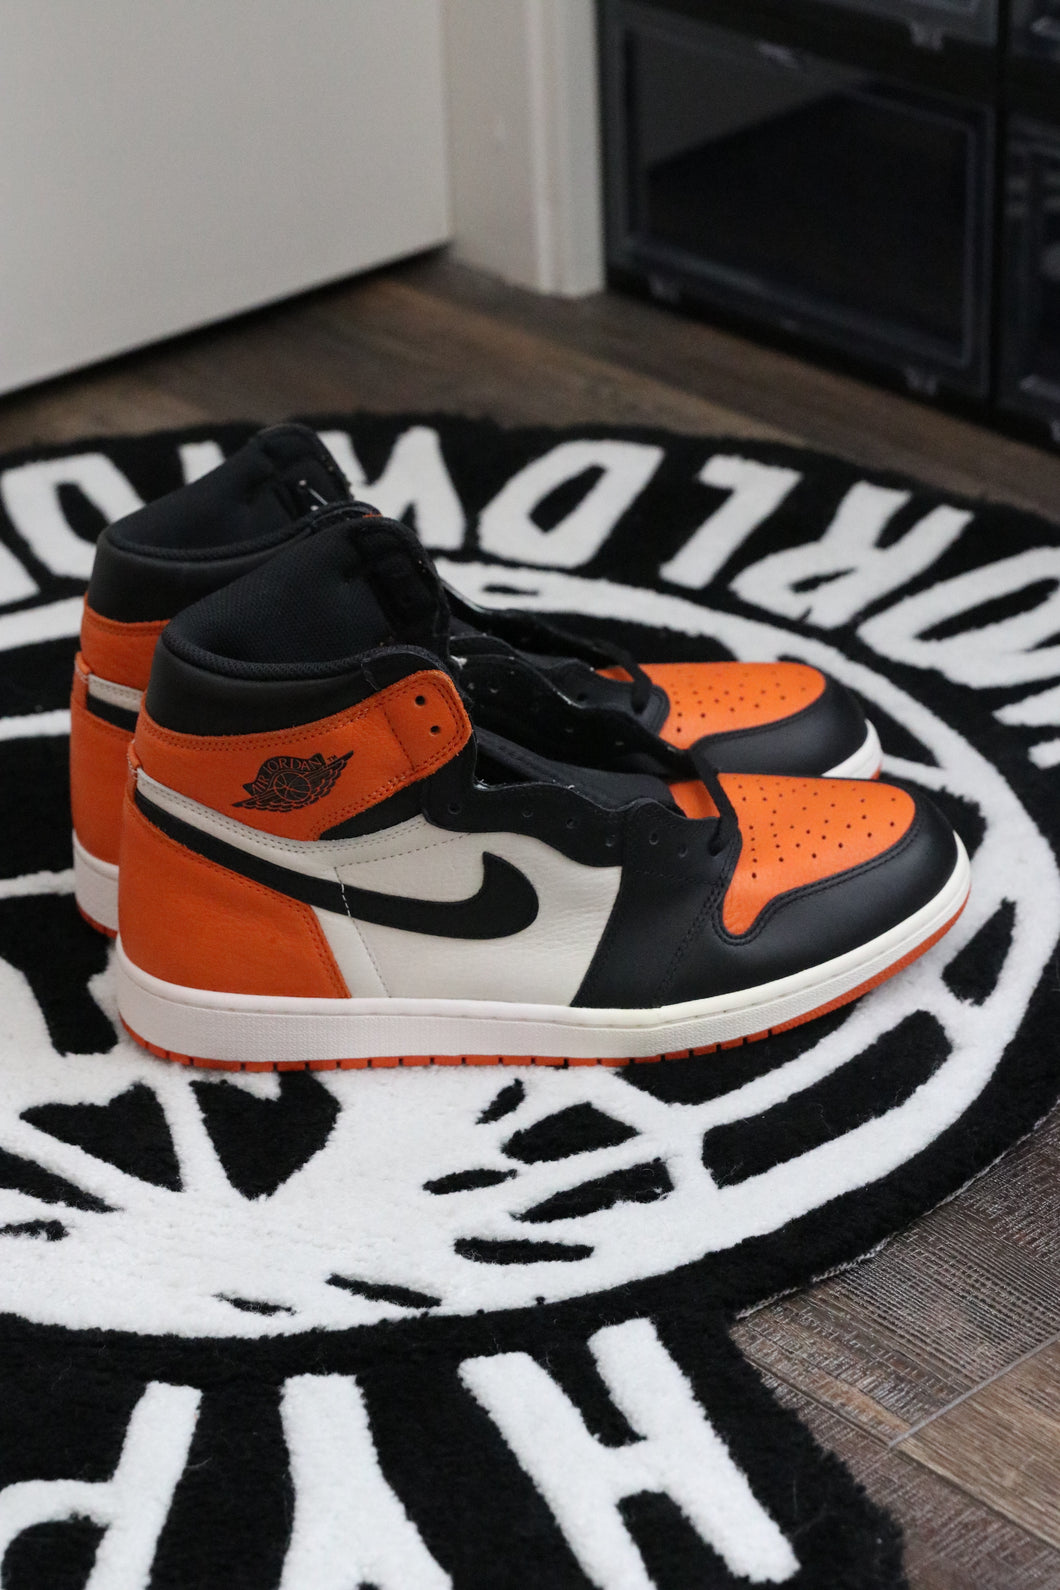 Jordan 1 Retro Shattered Backboard | New | Size 13